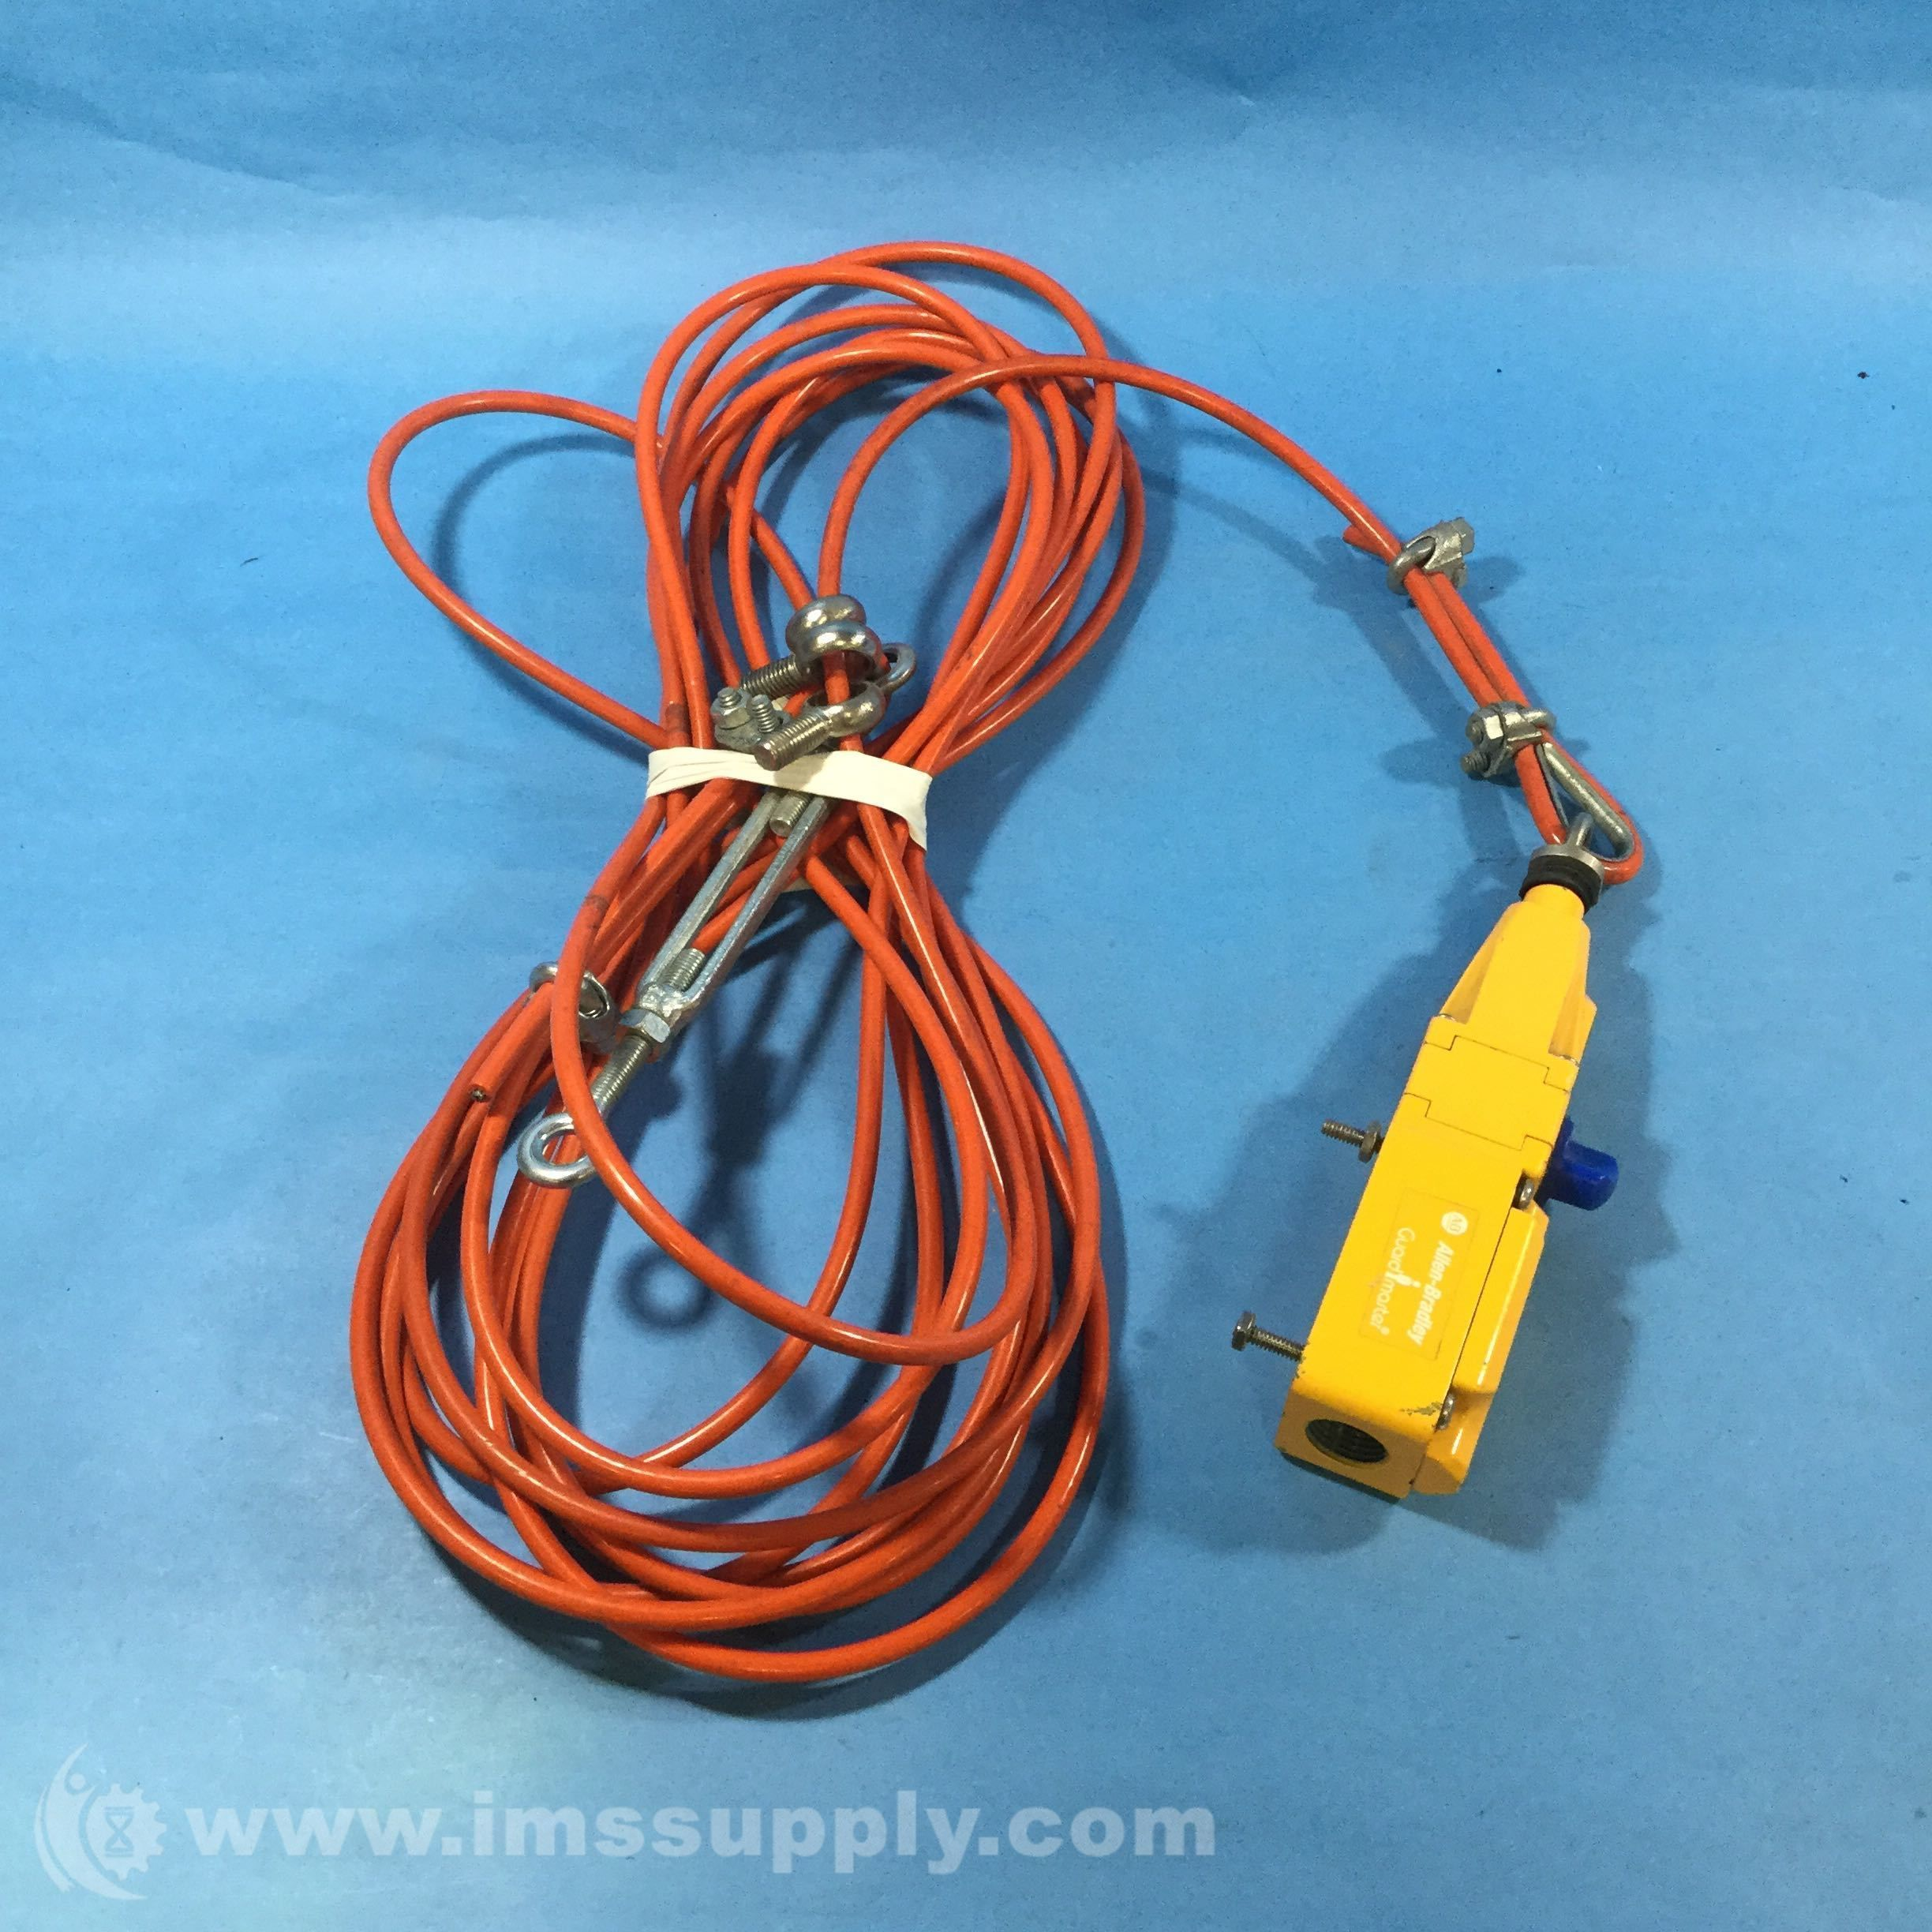 ALLEN BRADLEY 440E-D13114 SWITCH CABLE PULL 1/2